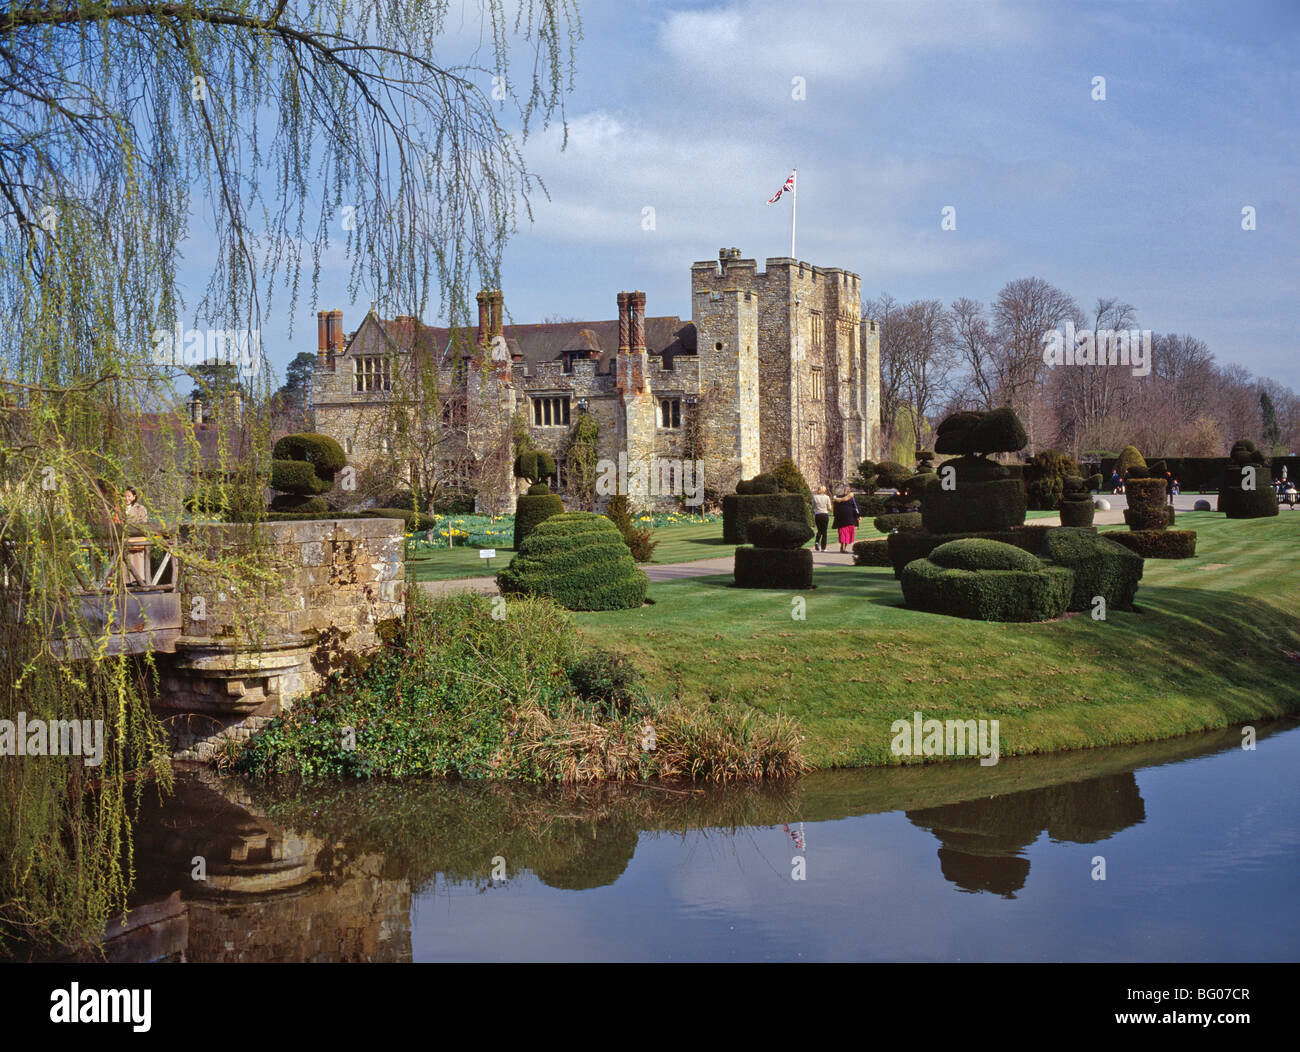 Leeds Castle, first used as a royal castle in the 9th century, near Maidstone, Kent, England, United Kingdom - Stock Image